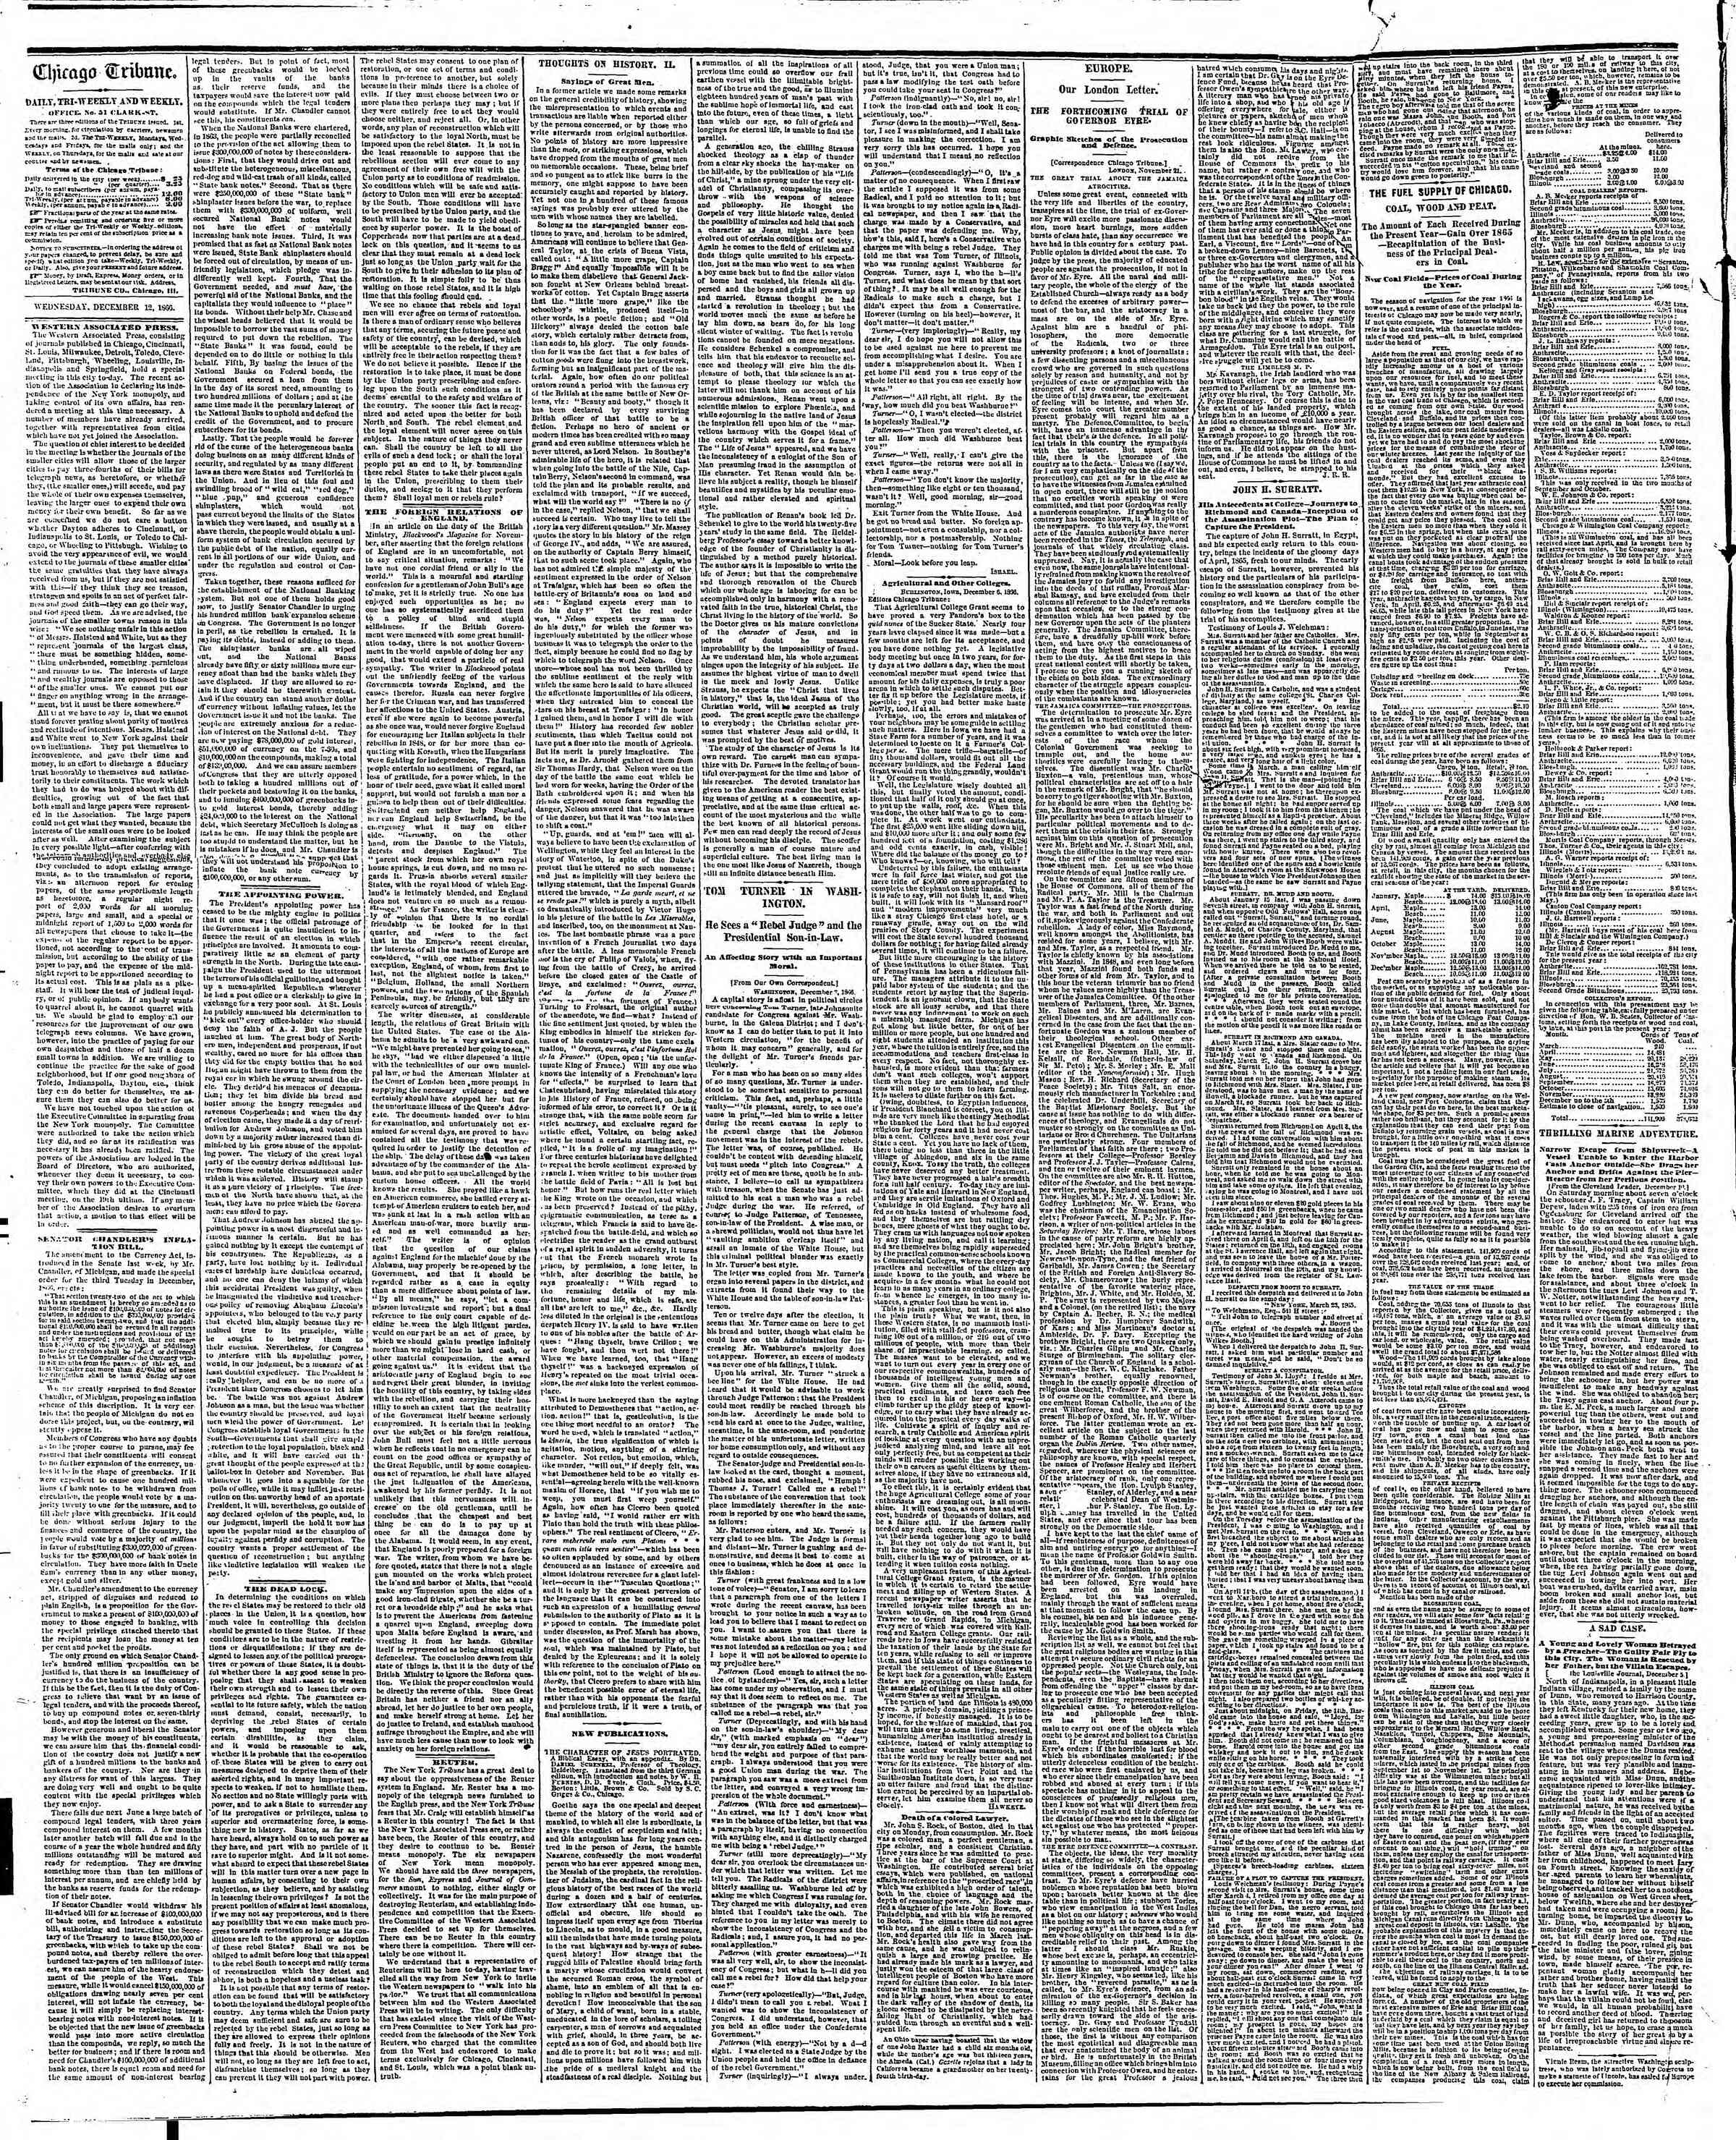 Newspaper of The Chicago Tribune dated December 12, 1866 Page 2